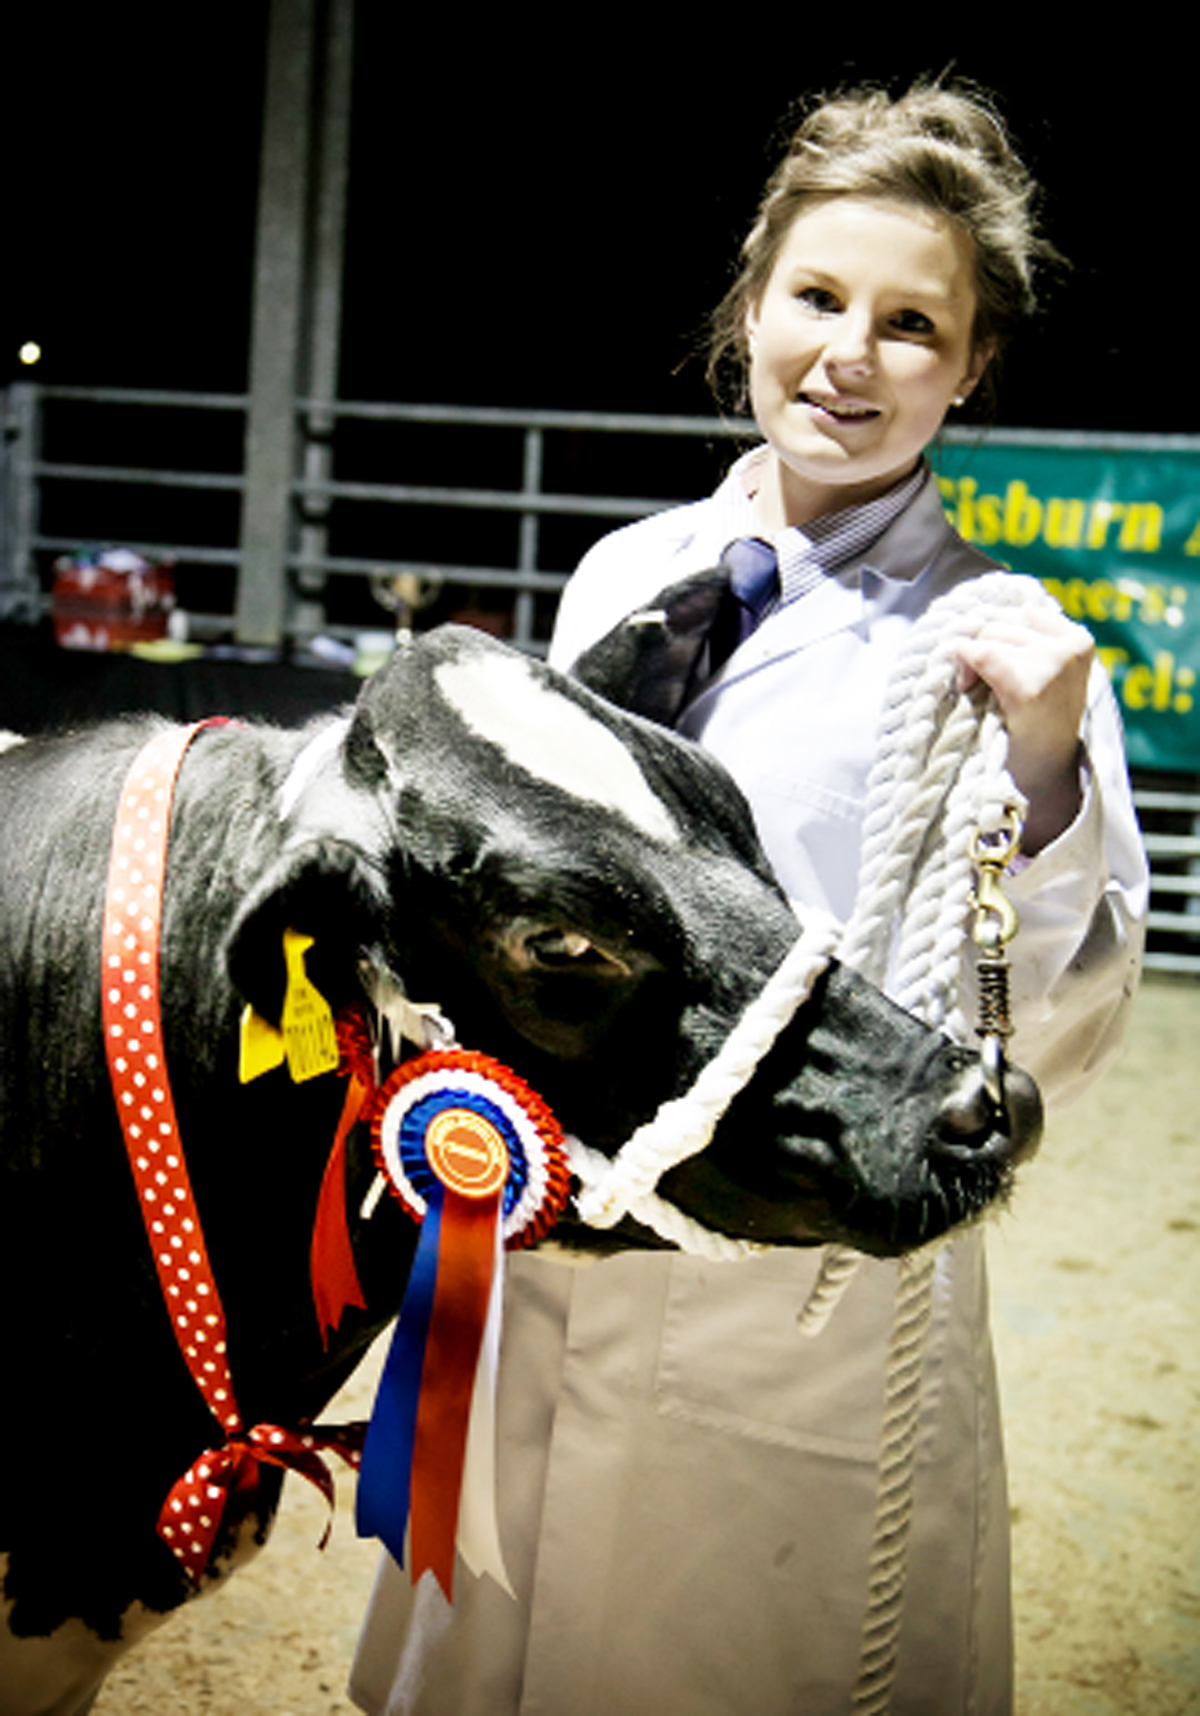 Lancashire young farmer's best heifers earn top title